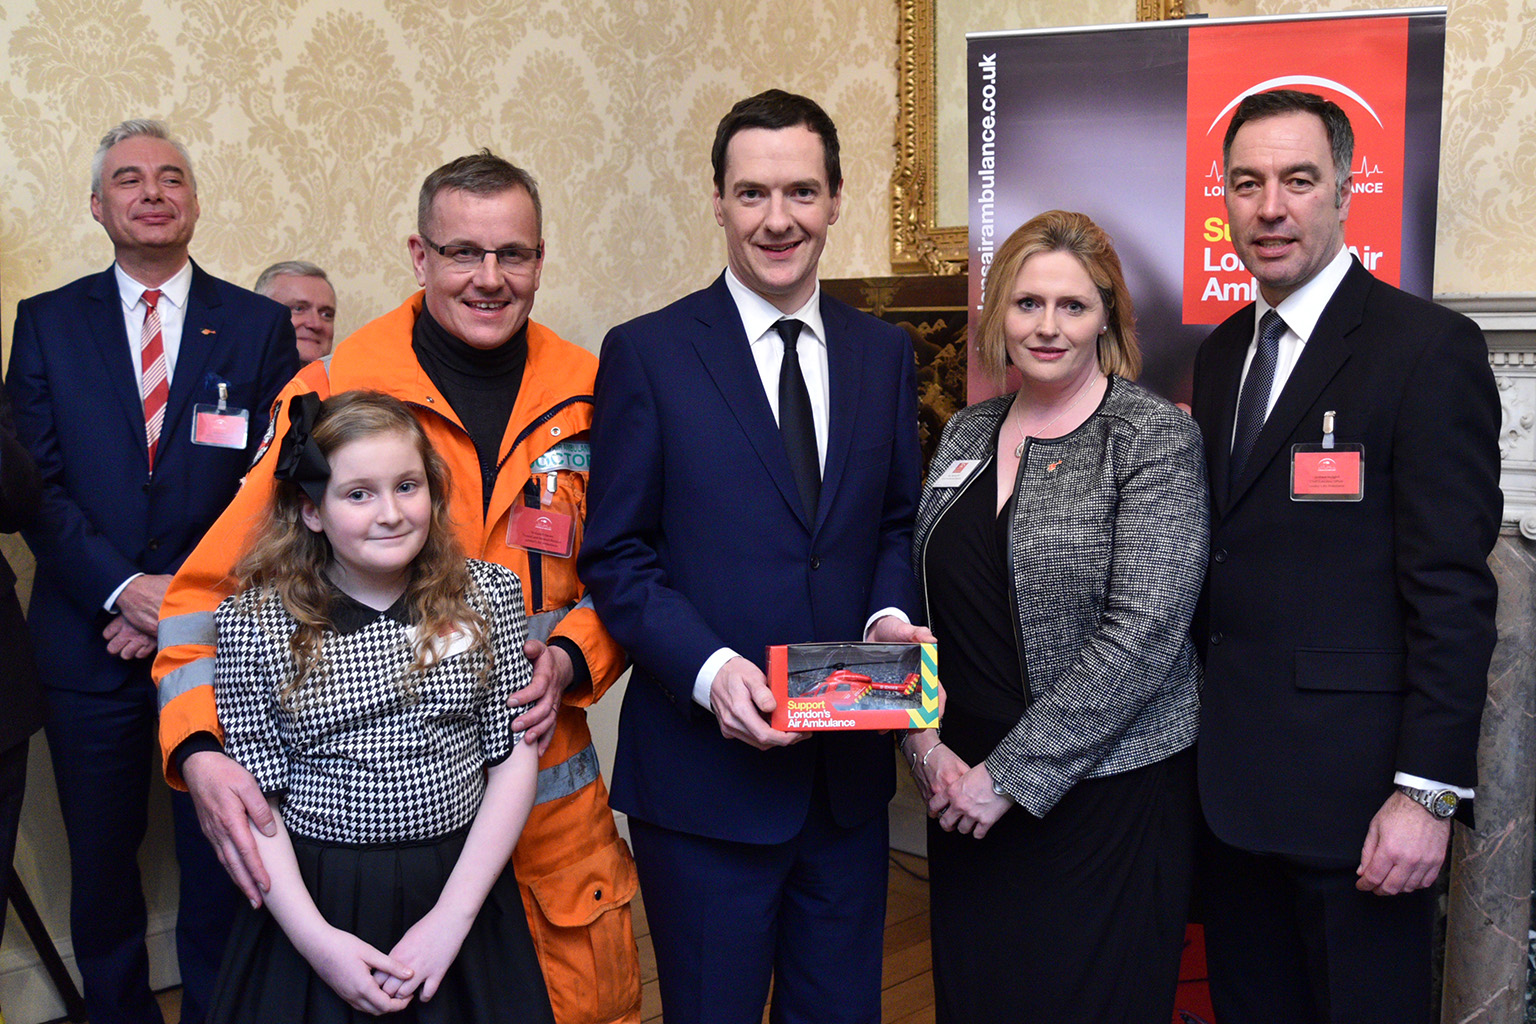 Chancellor of the Exchequer, George Osbourne 11 Downing Street London's Air Ambulance